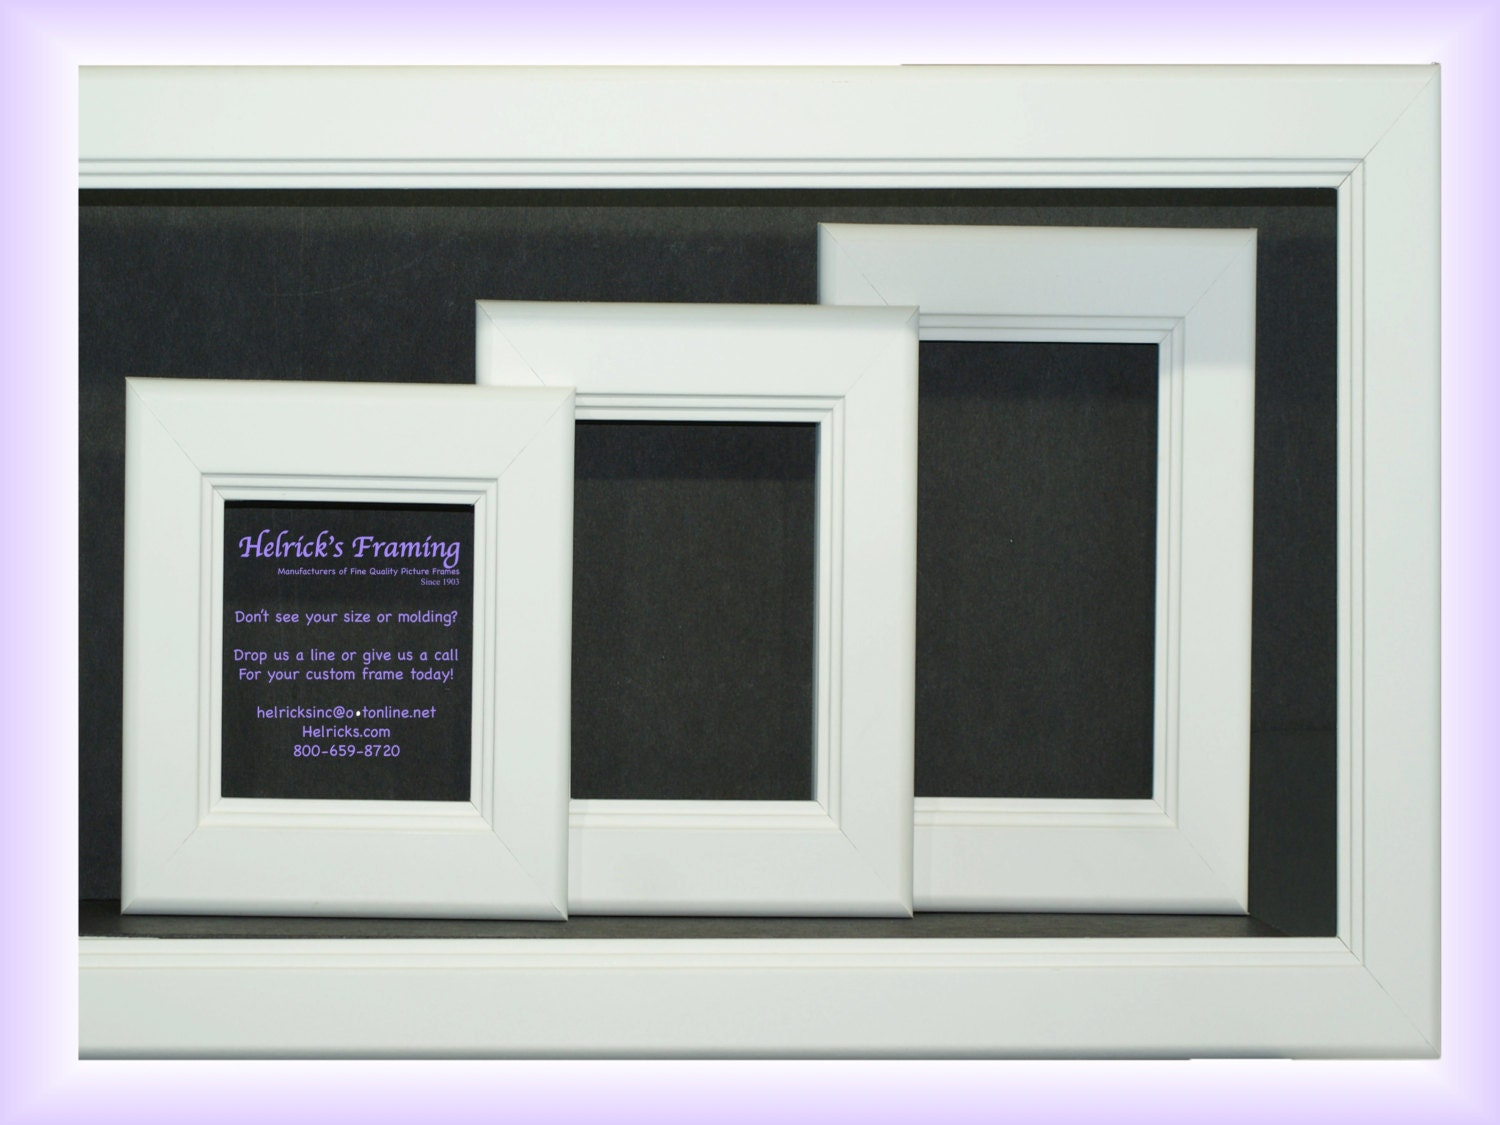 Custom White Picture Frames from 4x4 Square 6x6 8x8 10x10 10x20 ...